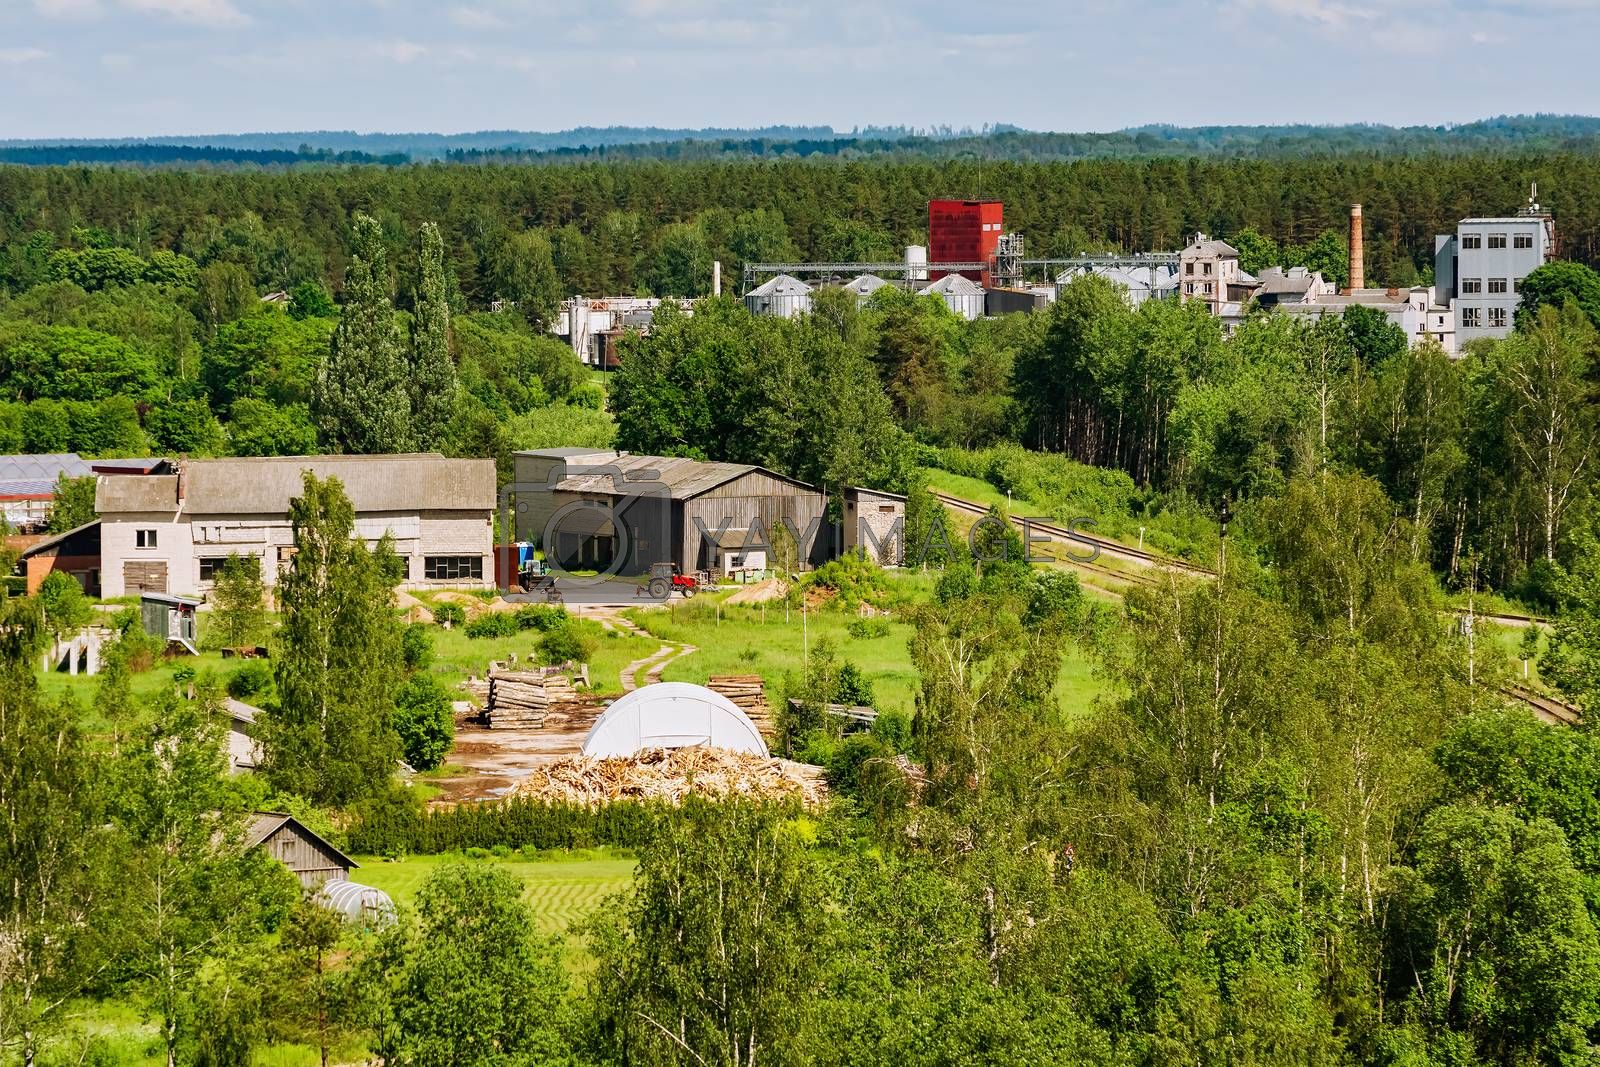 Industrial enterprises in the forest